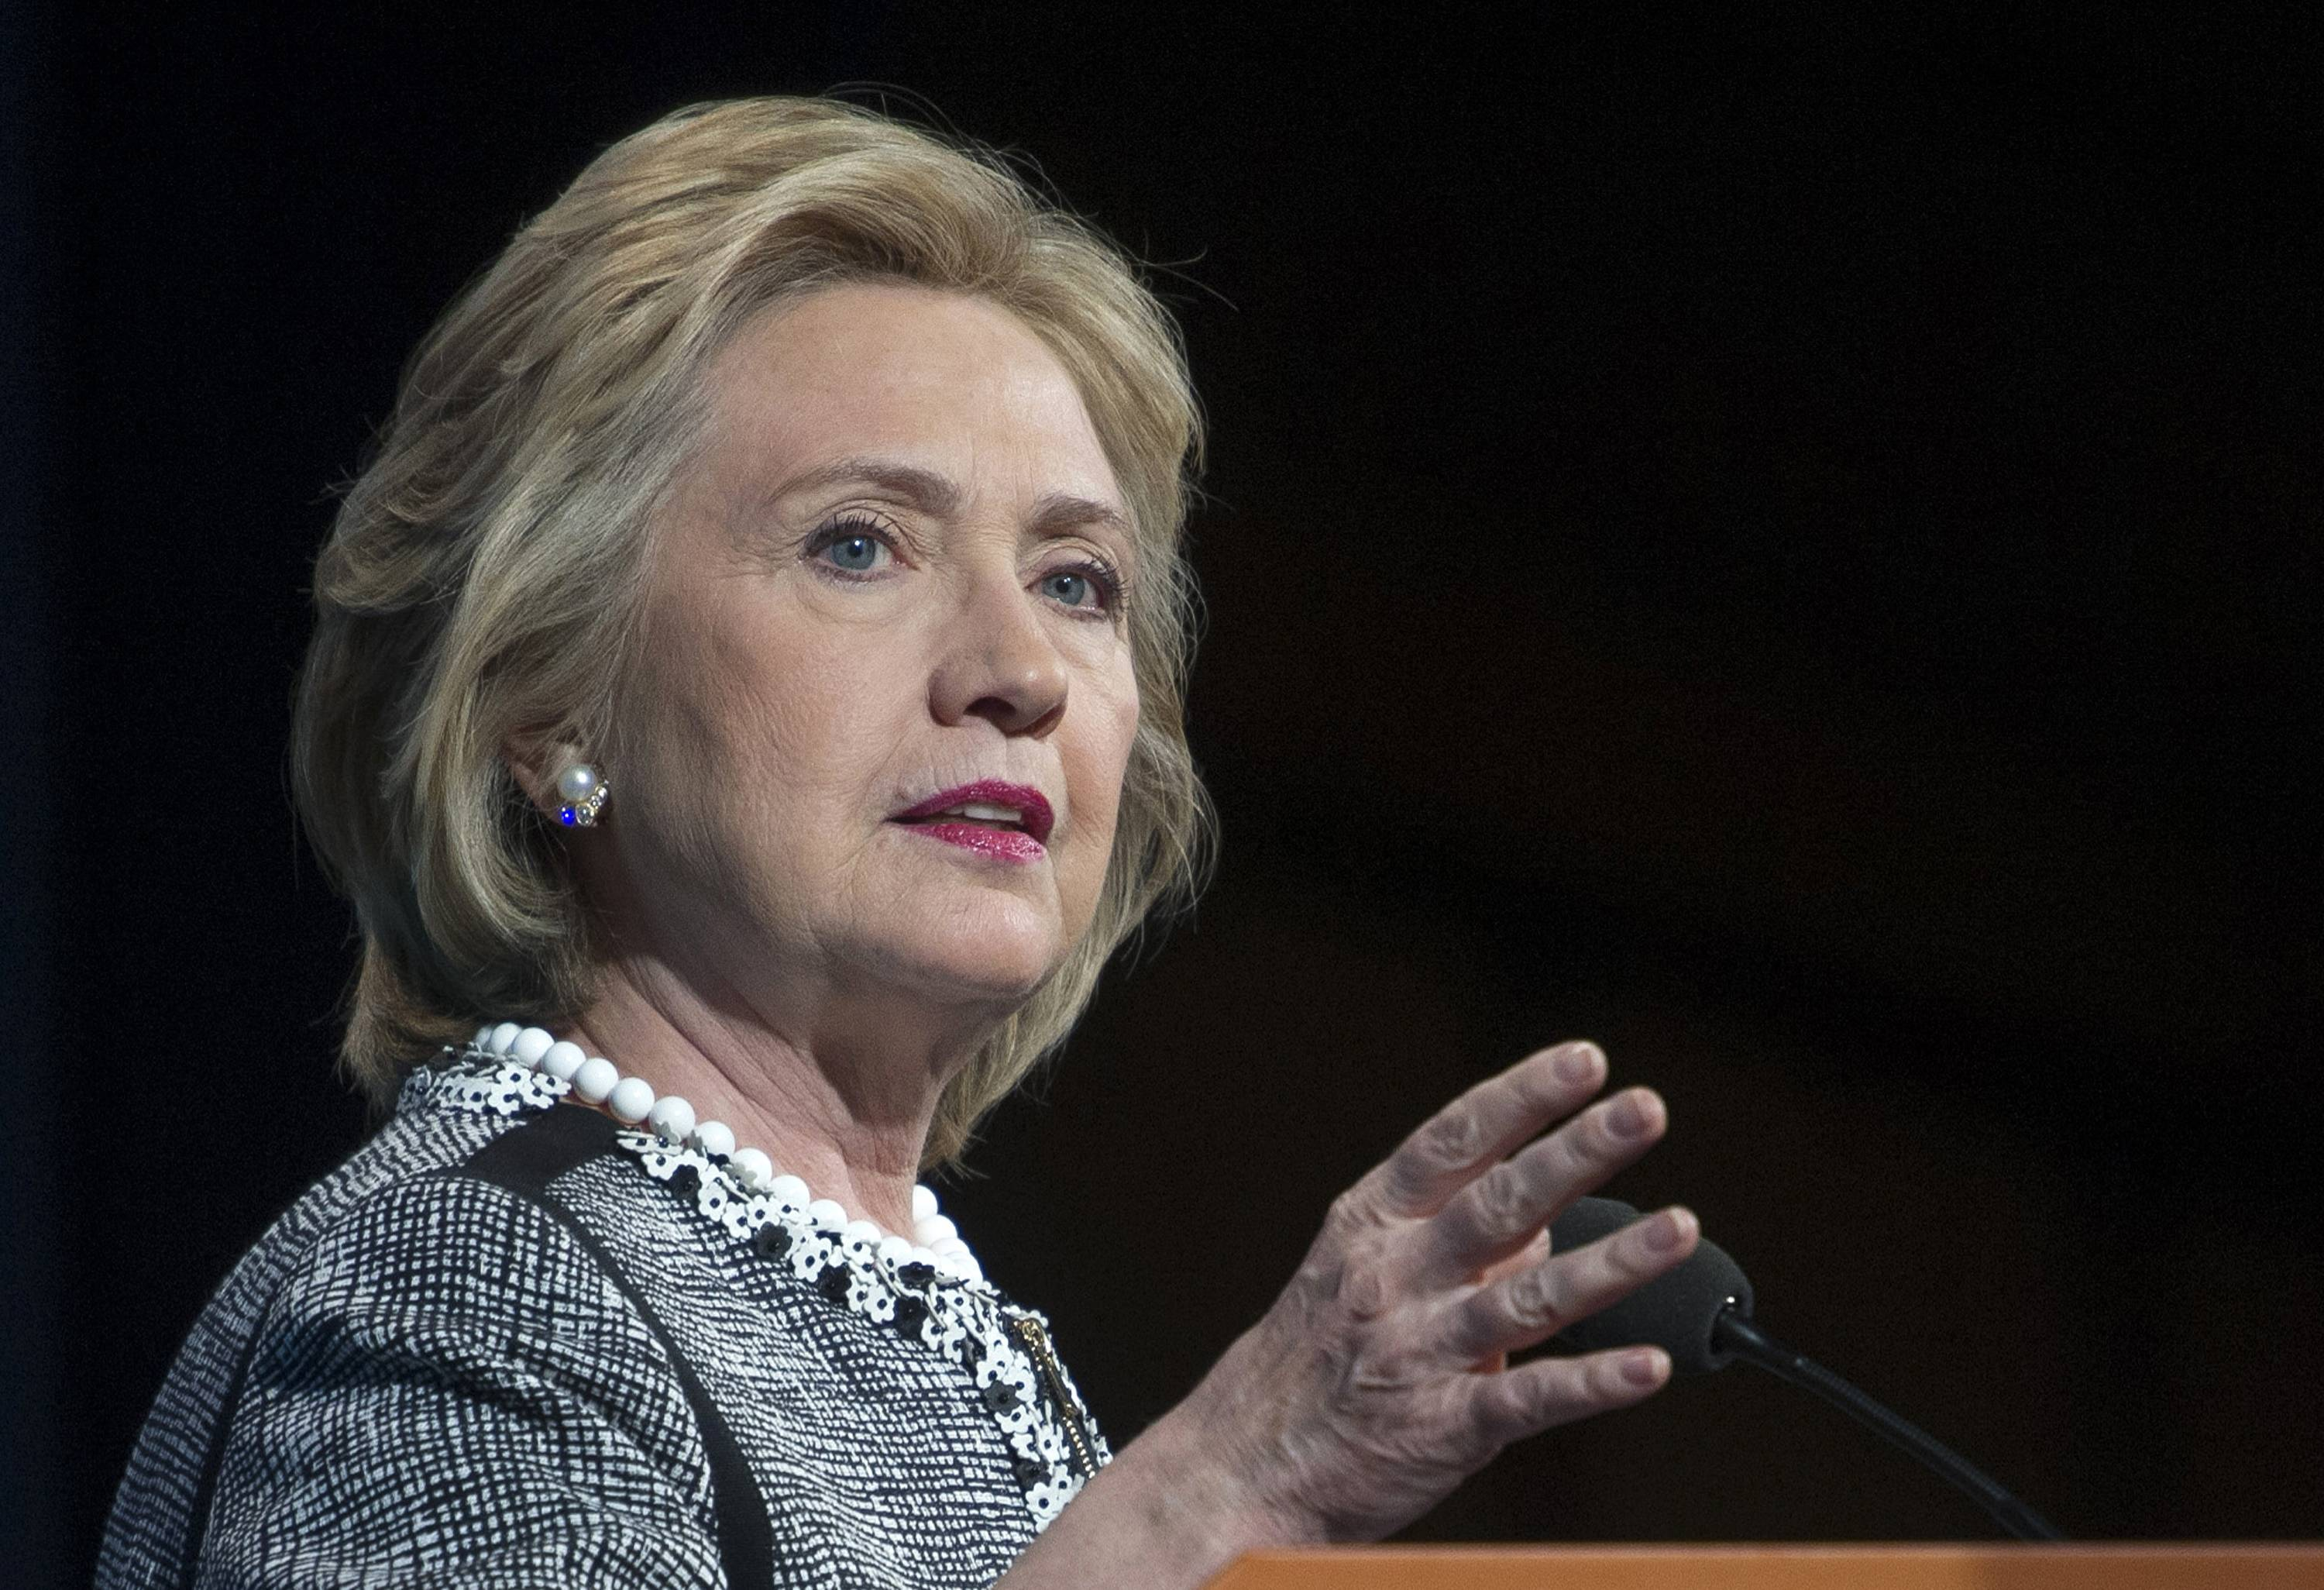 Hillary Clinton says she understands 'hard life'